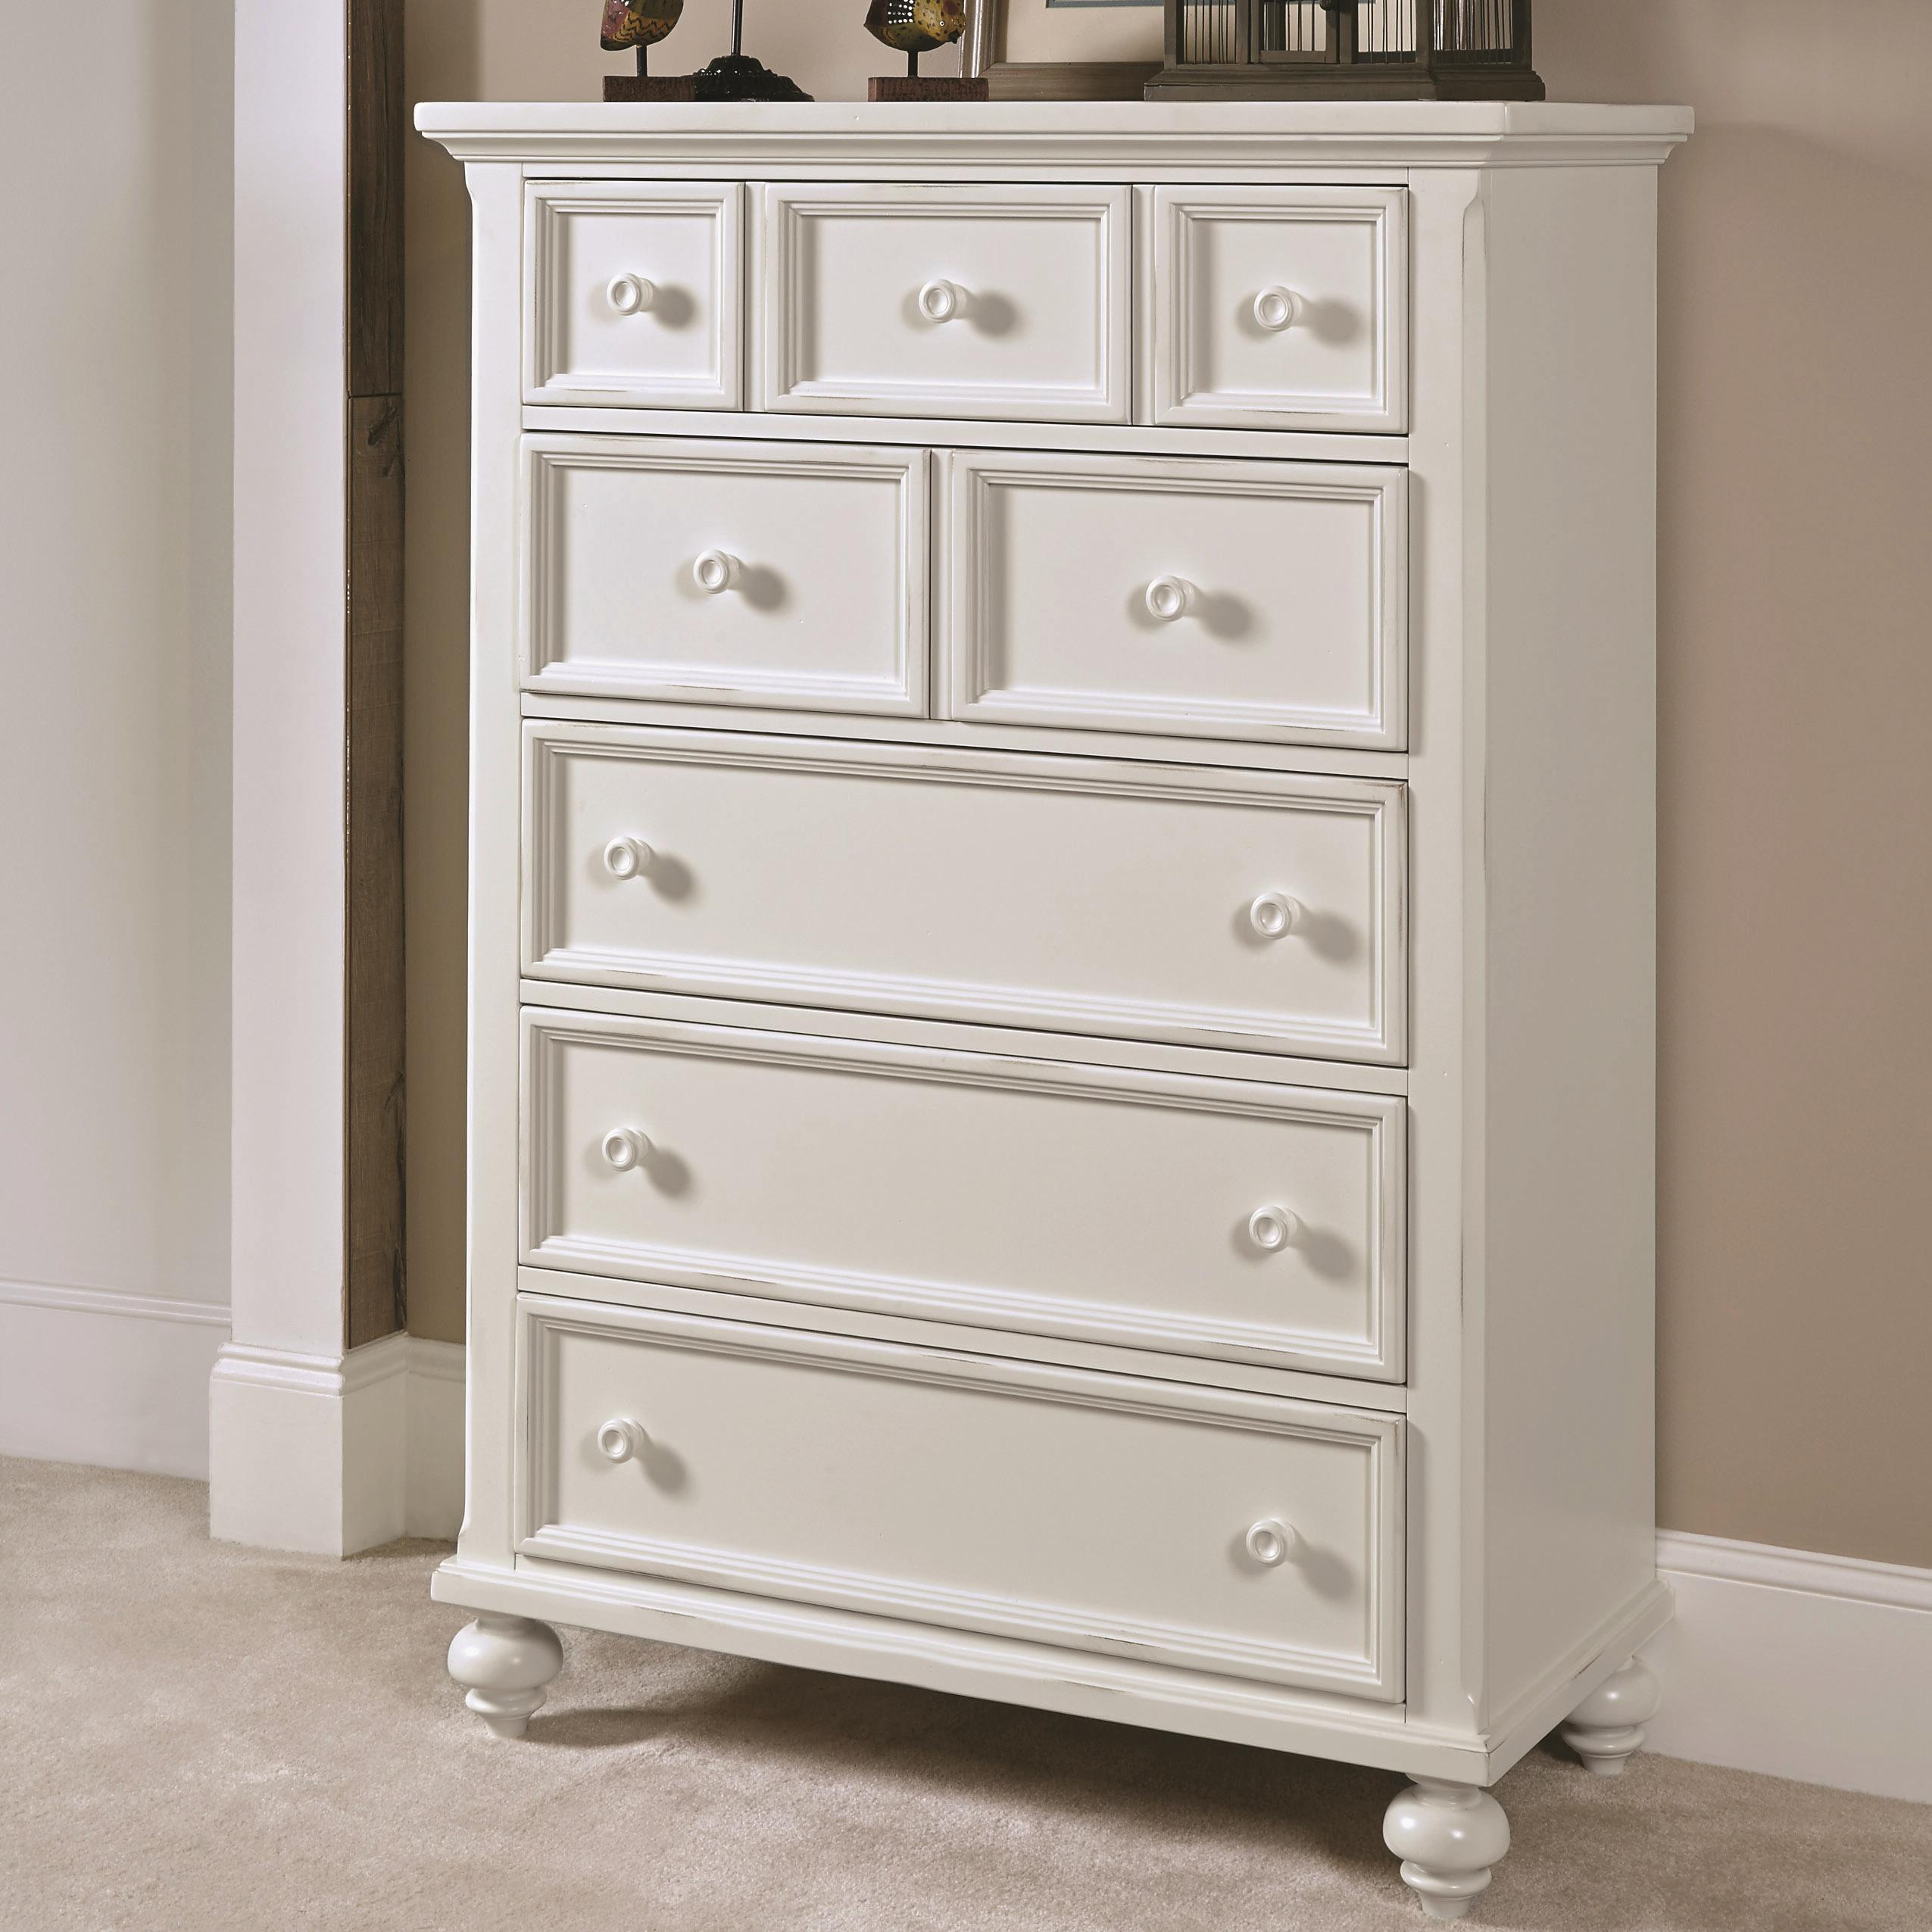 American Drew Lynn Haven Drawer Chest                               - Item Number: 416-215